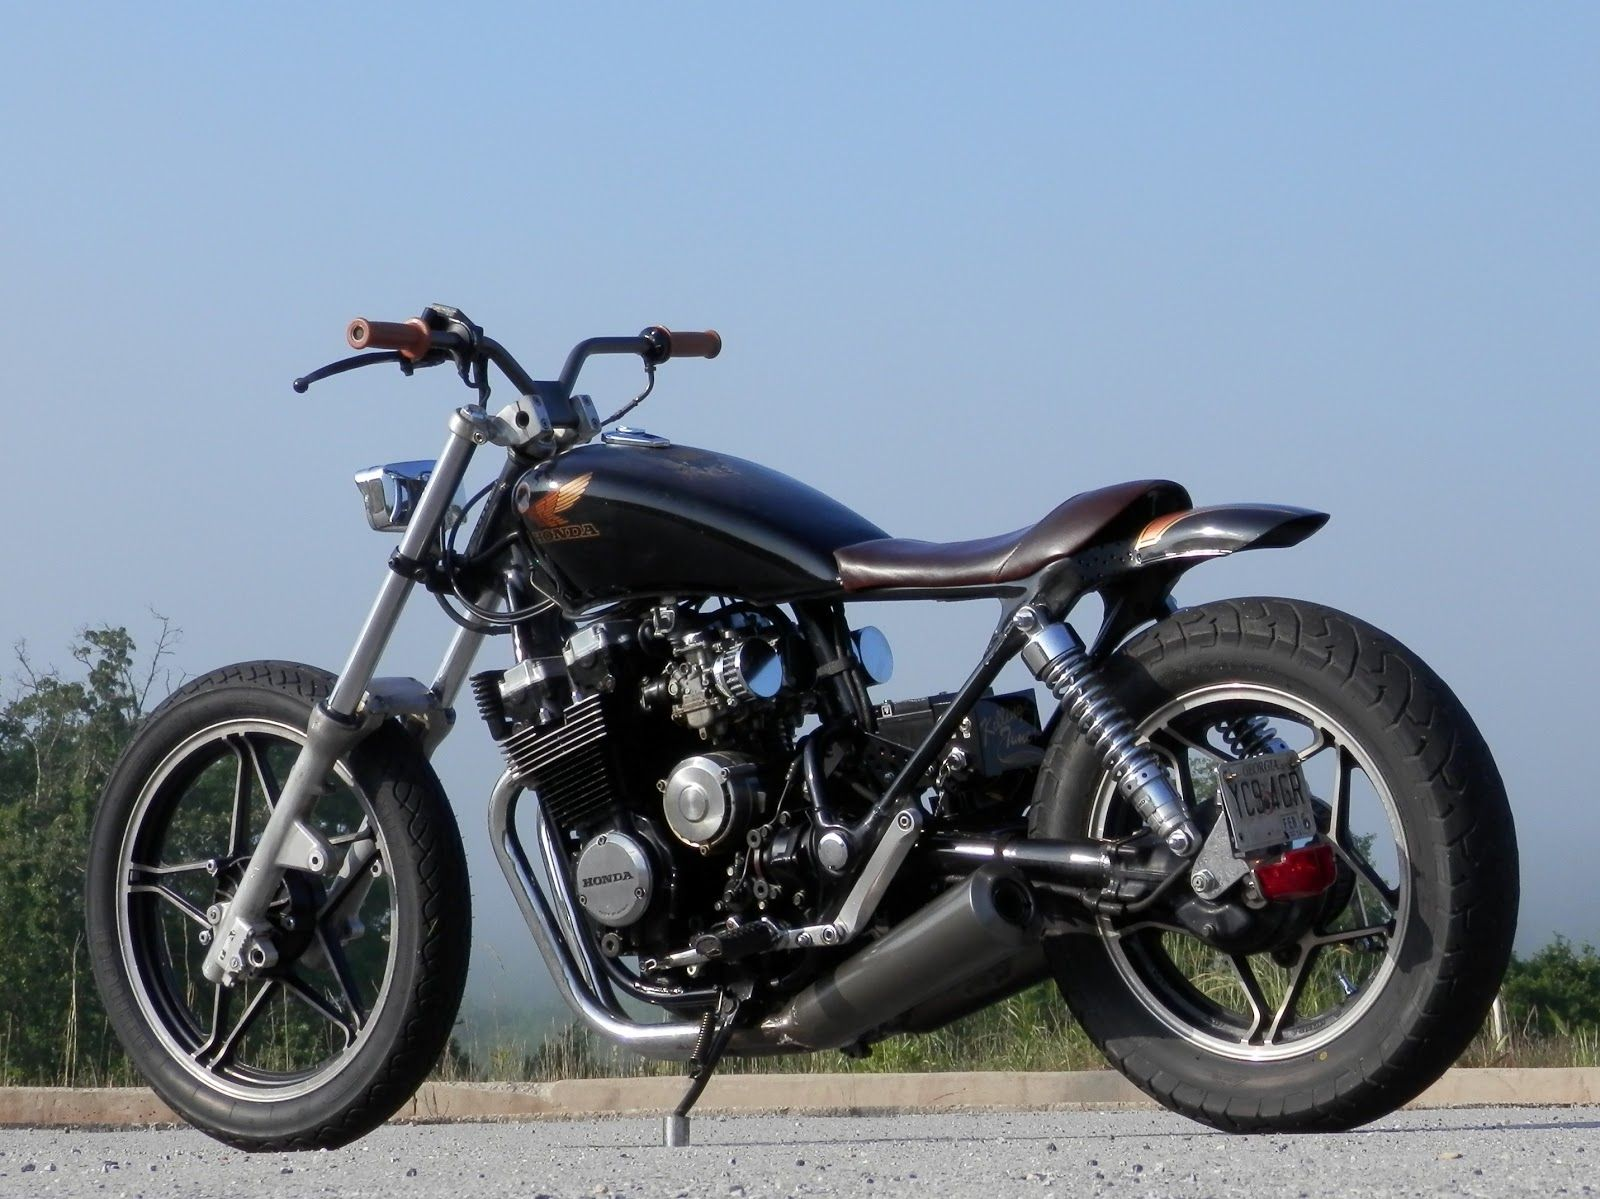 Wiring Schematic For A 1983 650 Nighthawk Free Download Diagram 1984 Cb650 Bobber Honda Cb550sc By Karnage Kustomz Flat Trackers Furthermore Together With